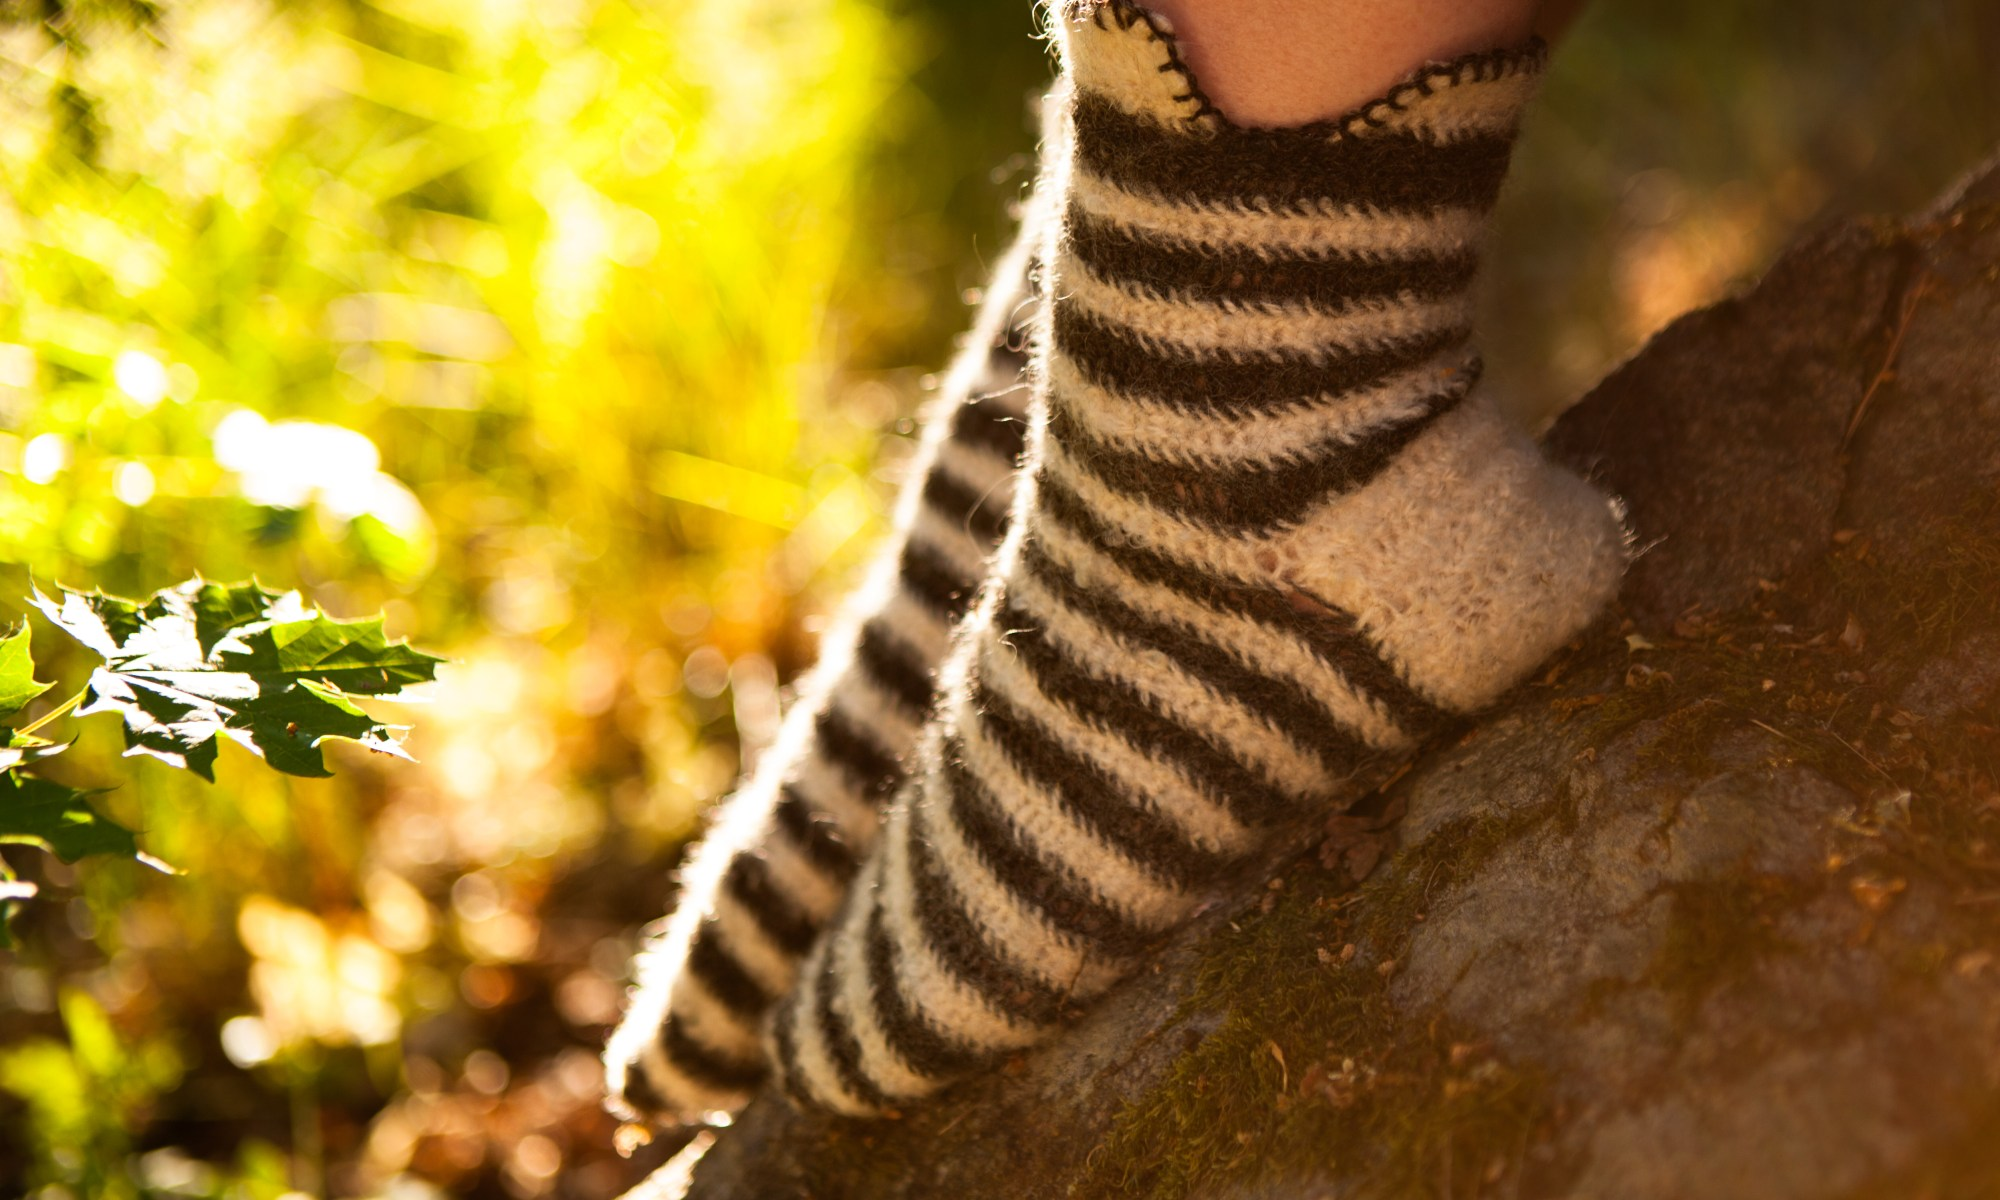 A pair of striped socks in backlight